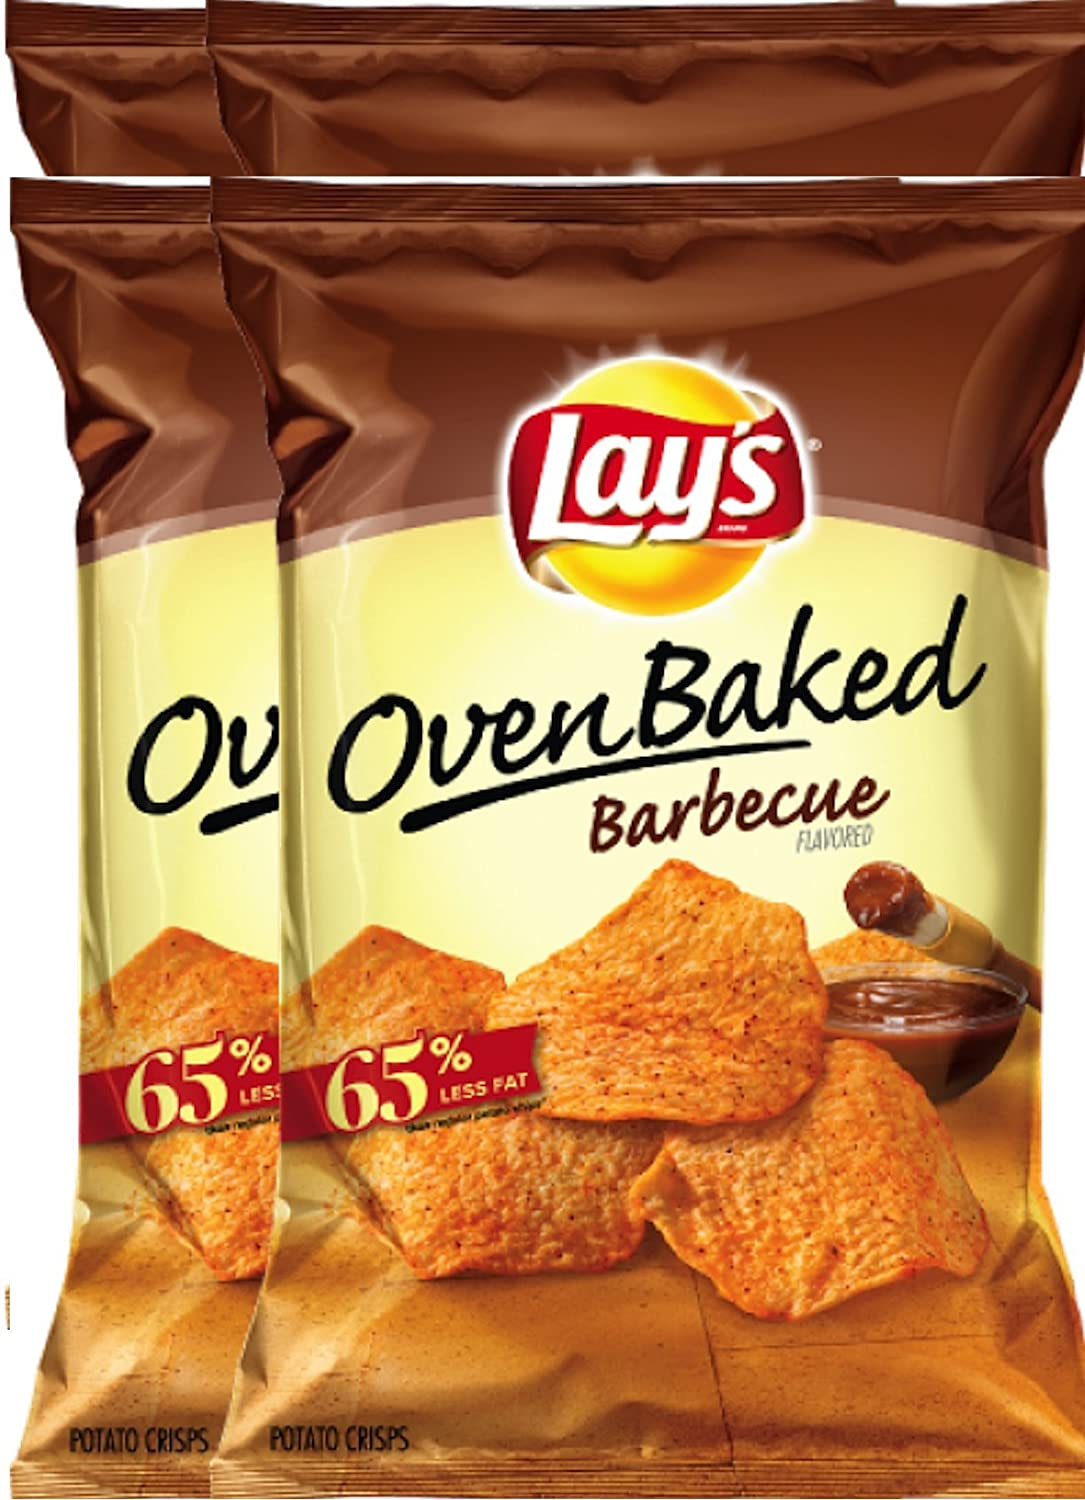 Lay's Oven Baked Barbecue Flavored Potato Crisps Snack Care Package for College, Military, Sports Net WT 6.25 Oz (4)